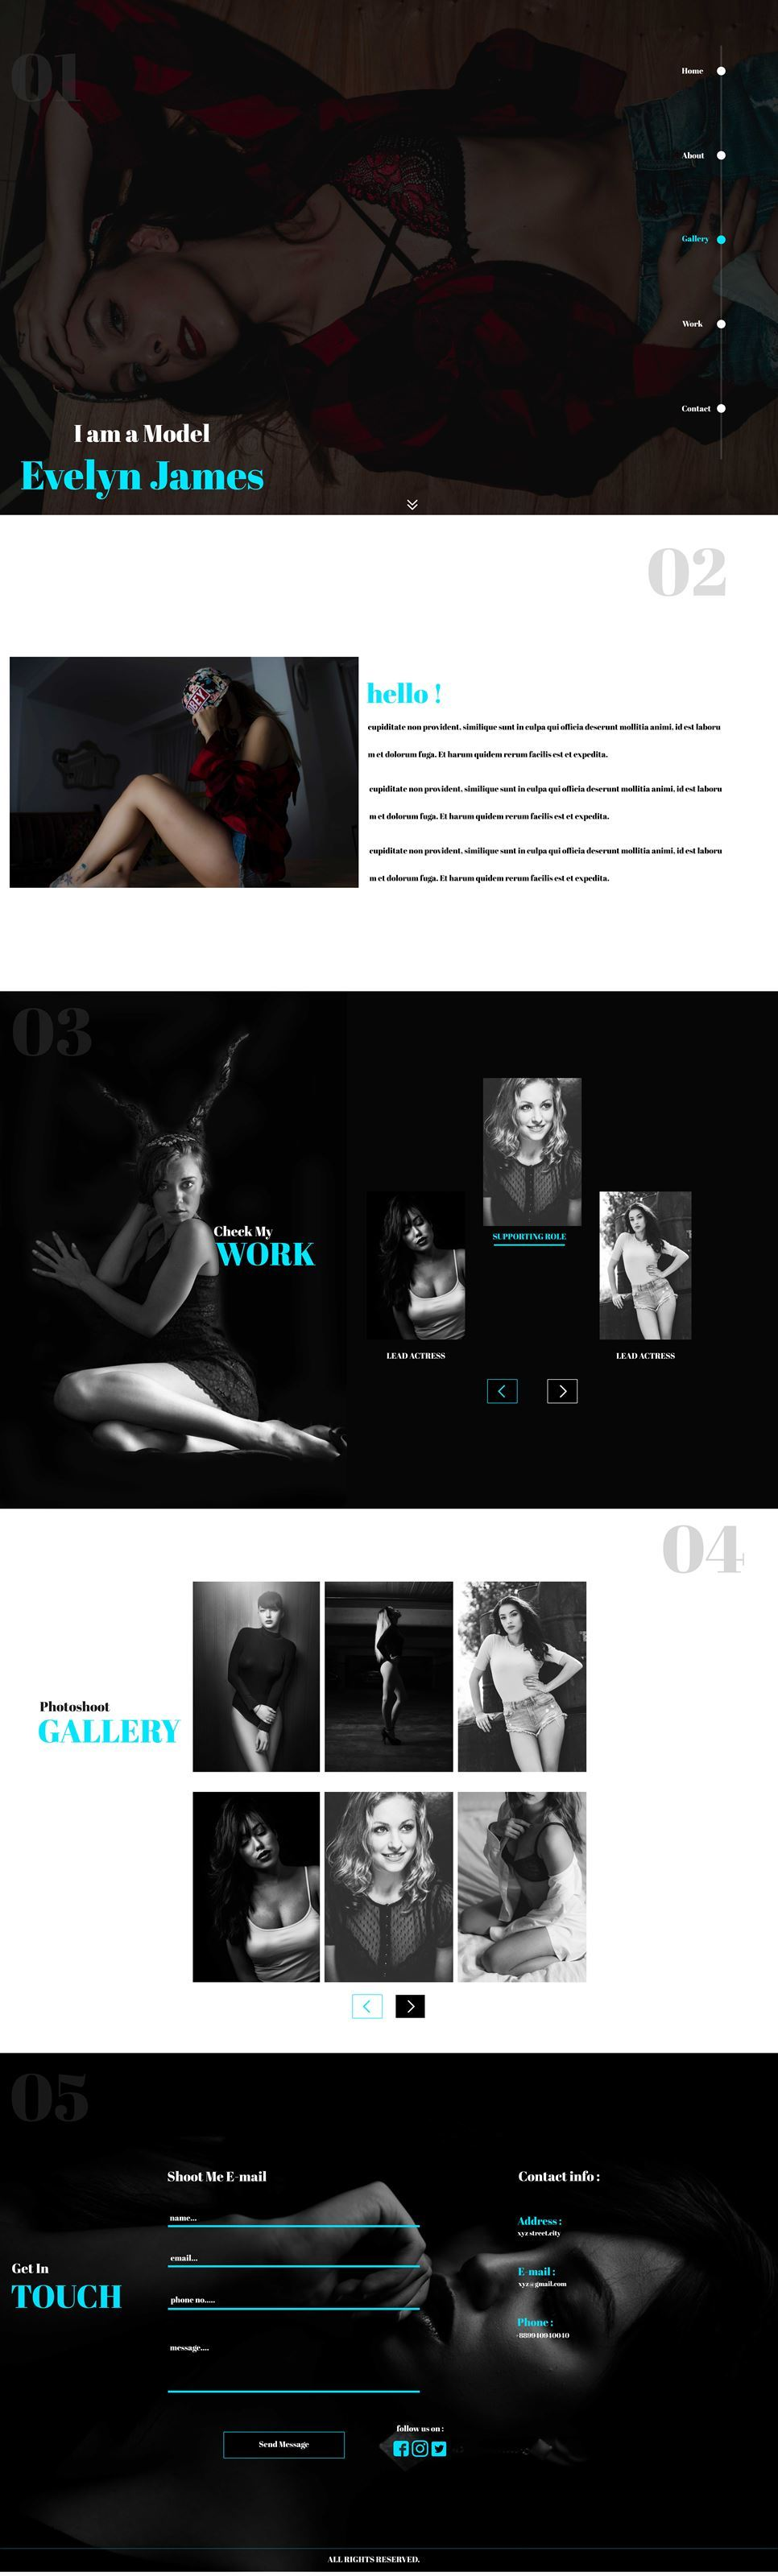 Evelyn HTML5 Template PSD Image